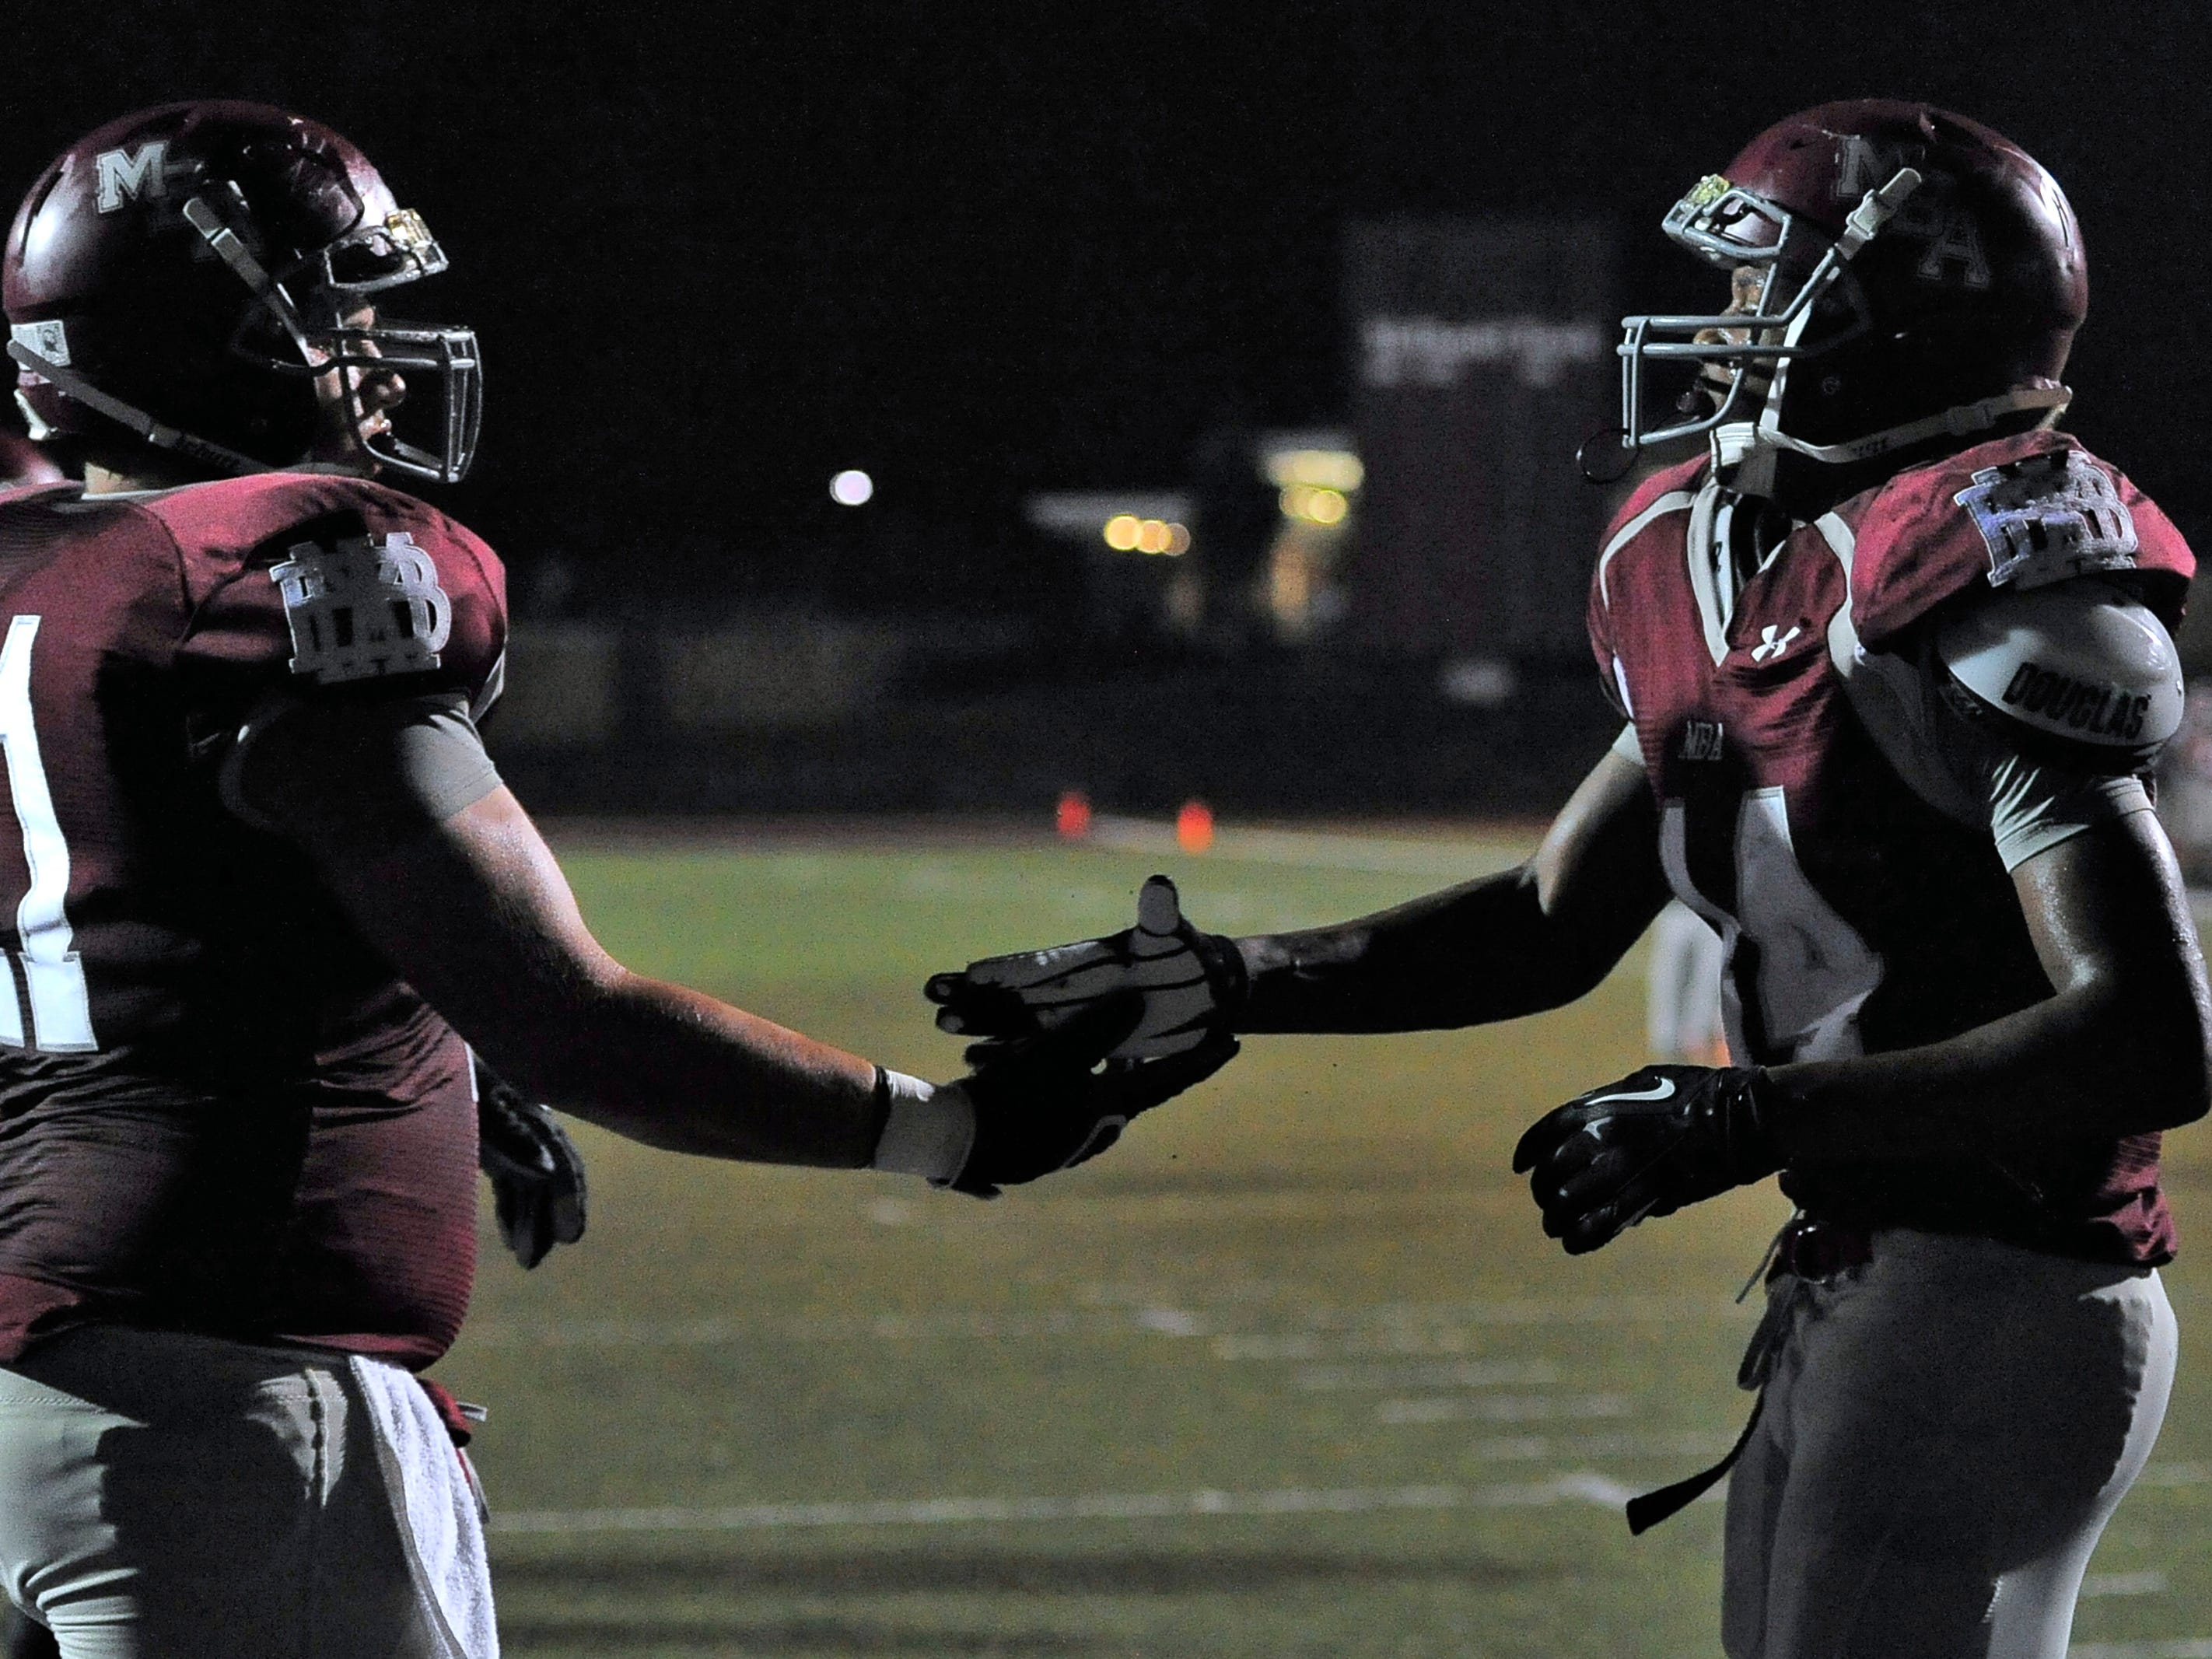 MBA offensive lineman Joseph Scowden congratulates running back Ty Chandler after a touchdown vs. rival Father Ryan Friday.